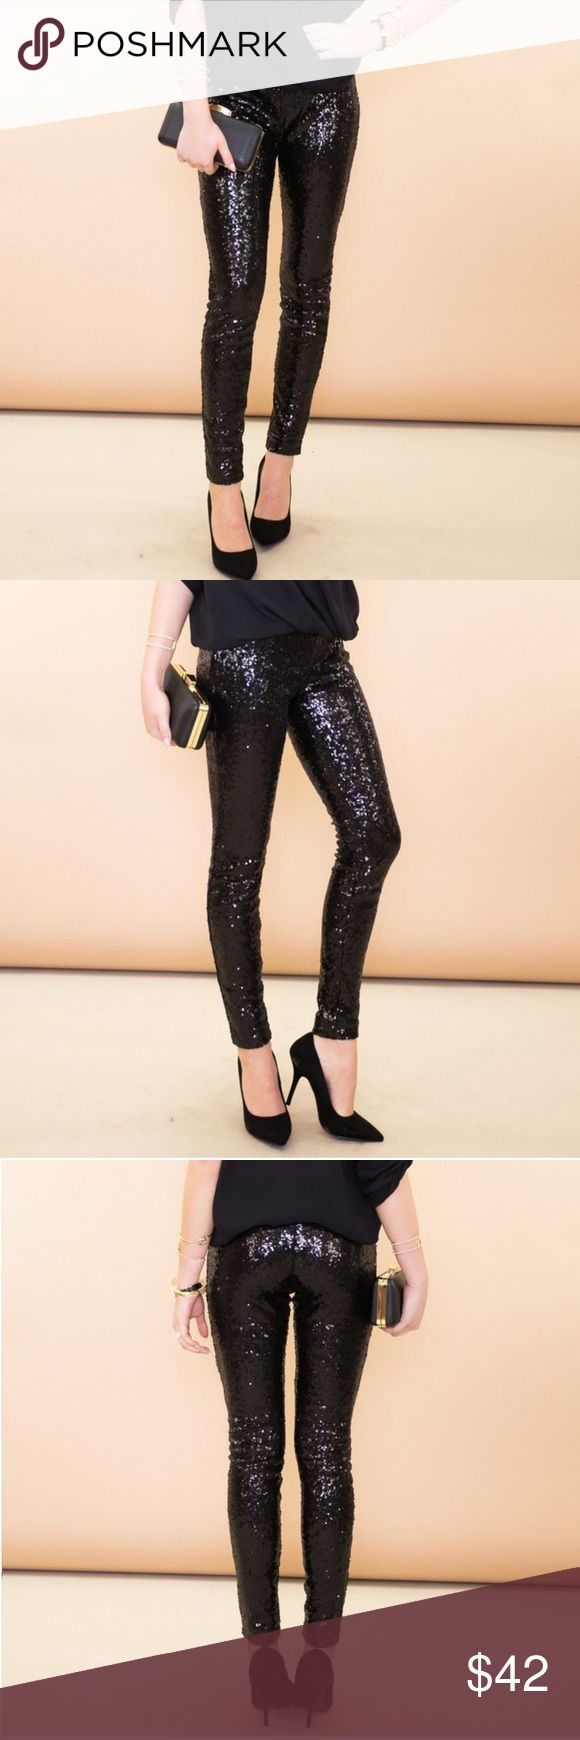 Black Sequin Leggings Gorgeous black sequin leggings, brand new with tags!! Tag says a size Large but is Asian sizing and will fit like a Small. Make a statement!! These are fabulous!! 🖤 Pants Leggings